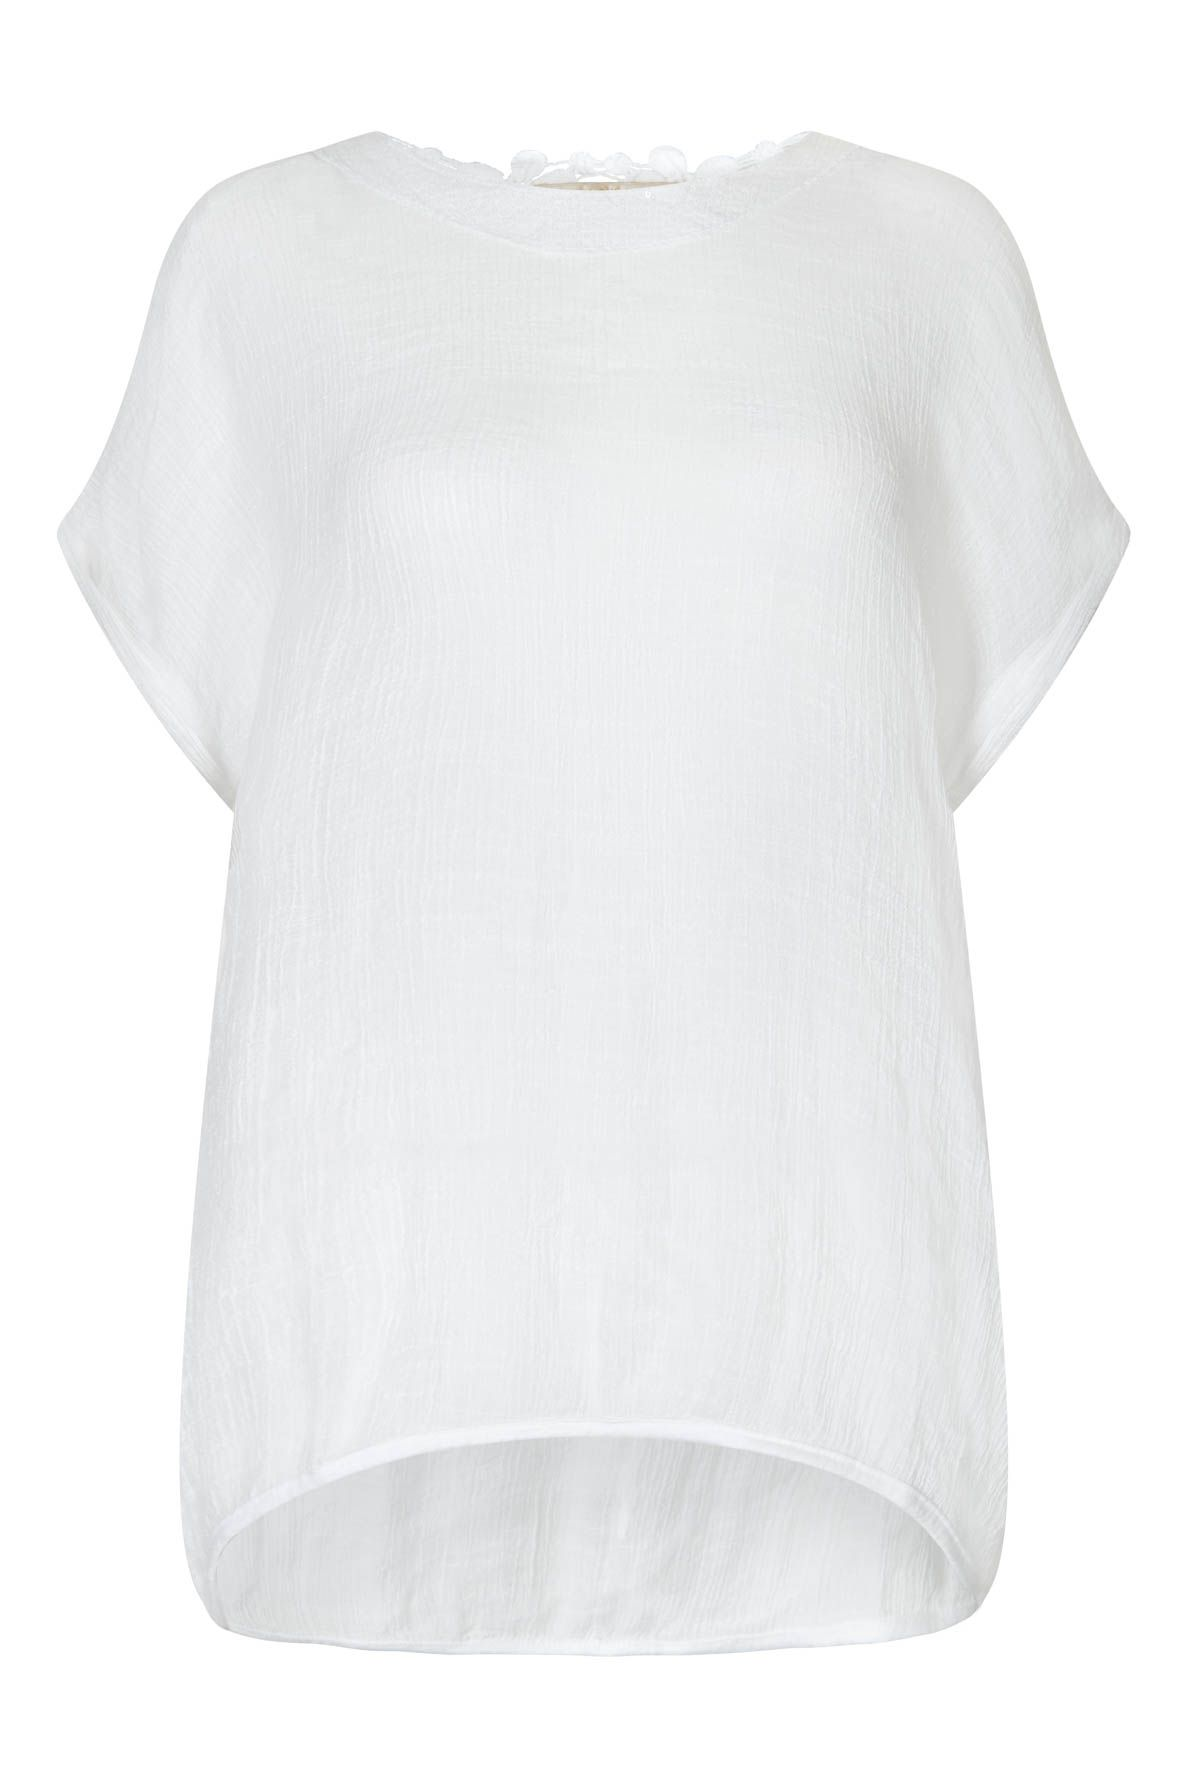 Nougat London Buddleia Sequin Top, White